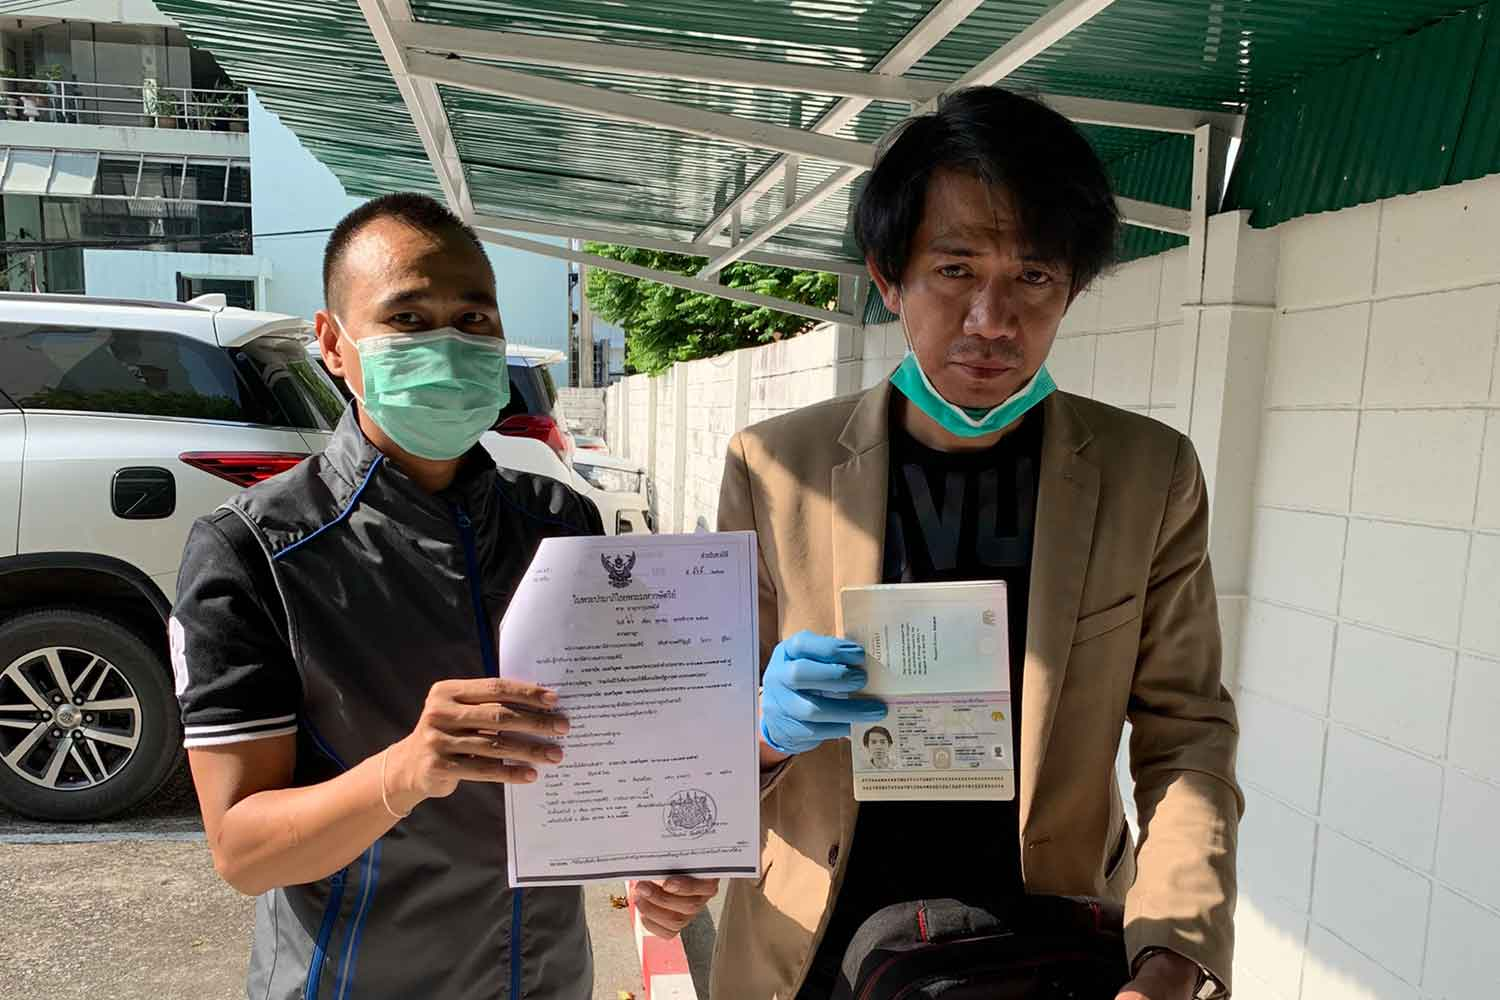 Thanat Amatawimut, 42, right, is arrested in a commercial bank parking lot in Bangkok on Monday, accused of exchanging forged US banknotes with a face value of $39,000. (Photo supplied)